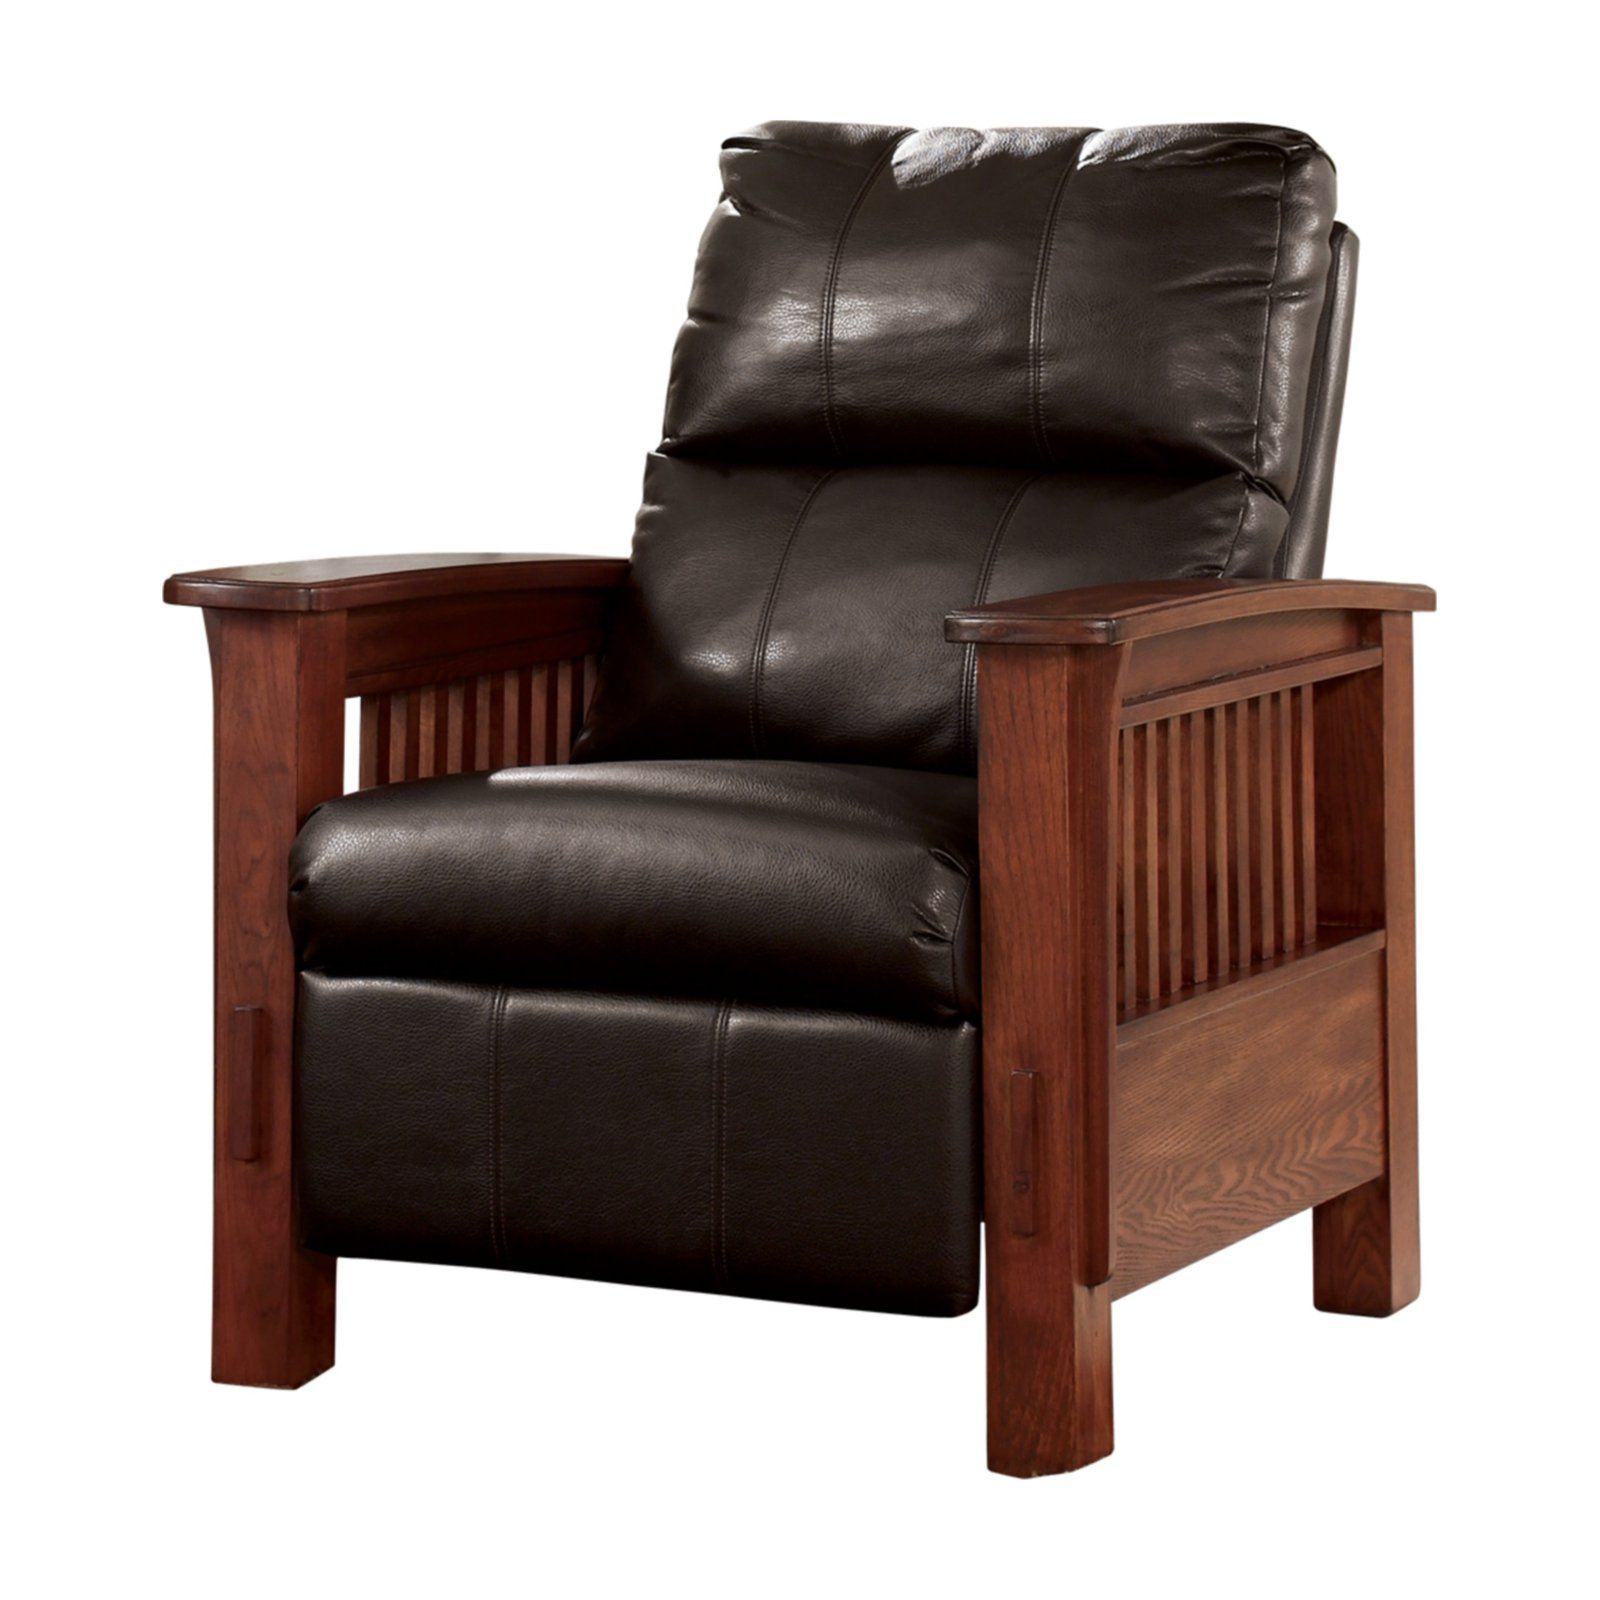 Signature Design By Ashley Santa Fe Mission Recliner Chocolate Recliner Cheap Office Chairs Leather Recliner